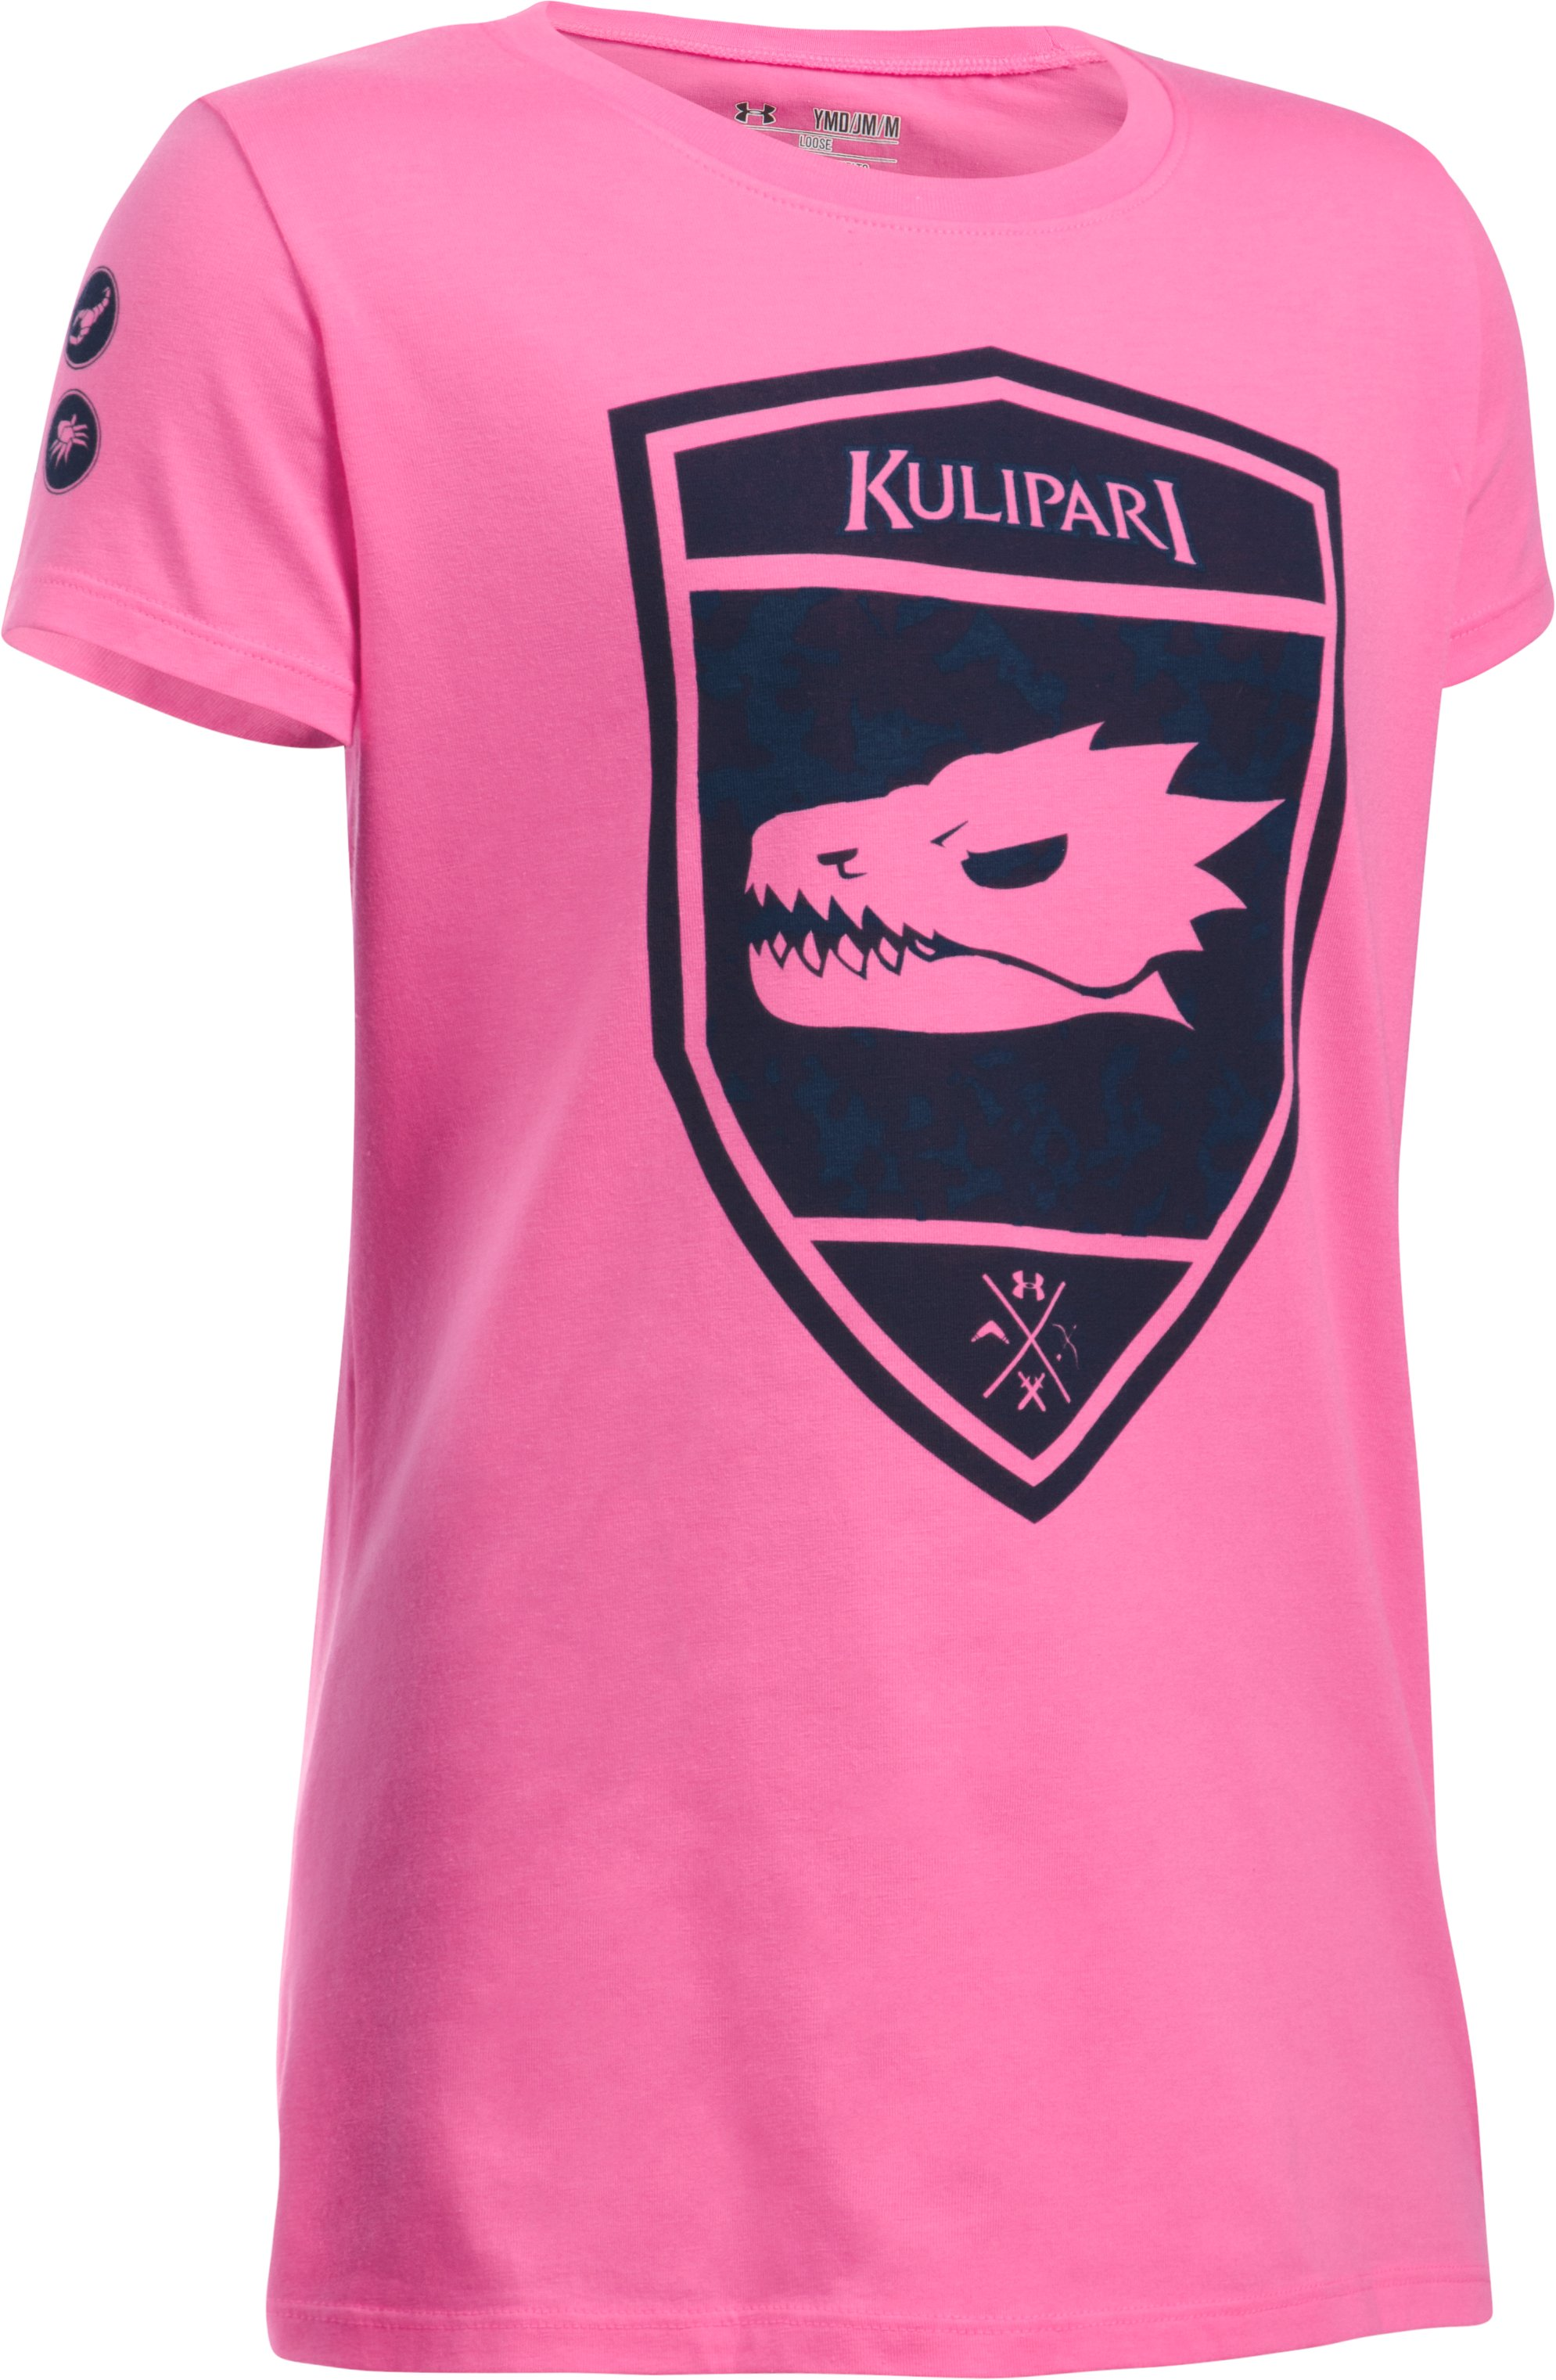 Girls' UA Kulipari Dragon Short Sleeve T-Shirt, PINK PUNK